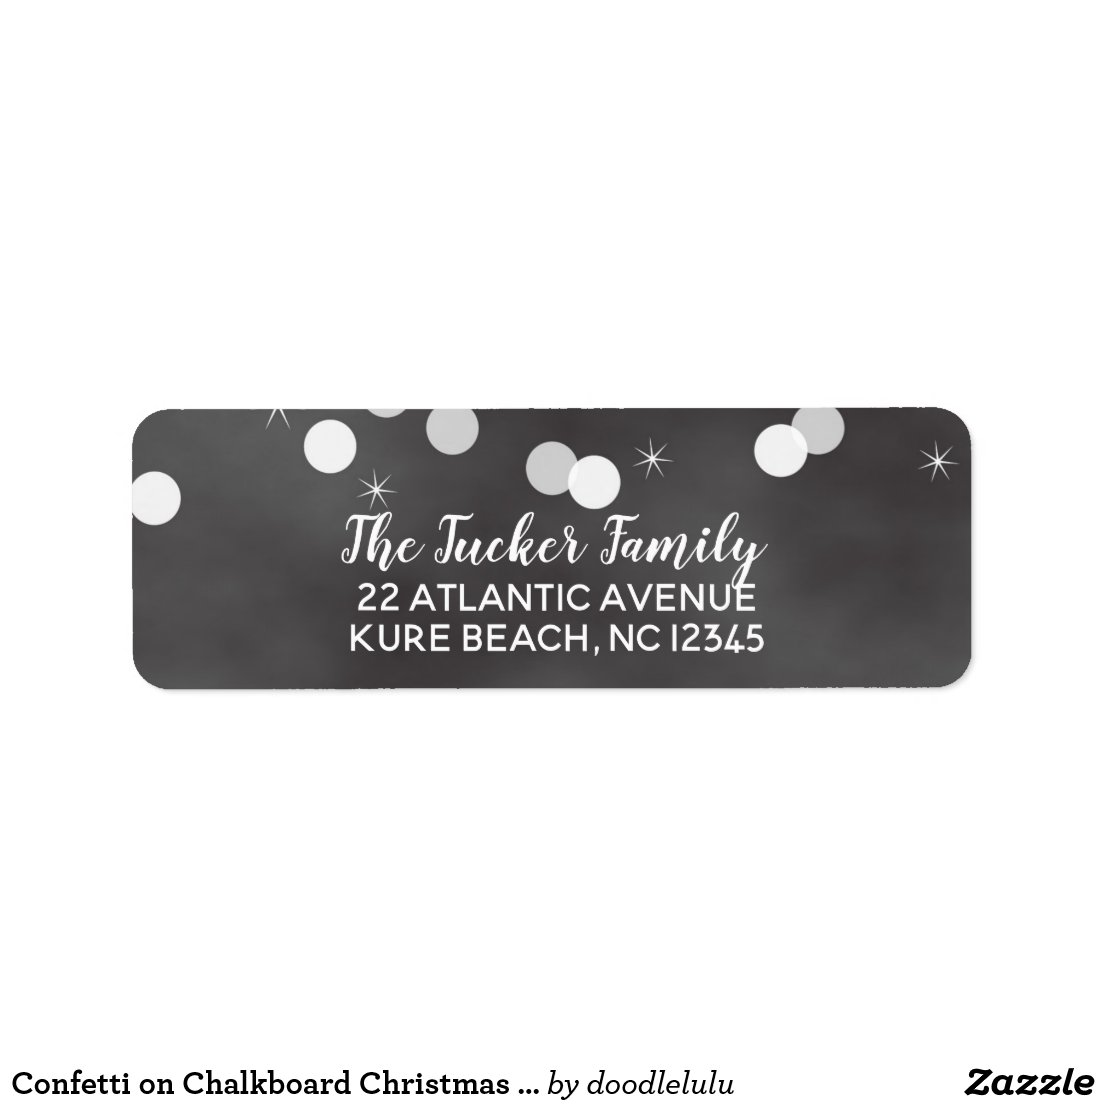 Confetti on Chalkboard Christmas address Label